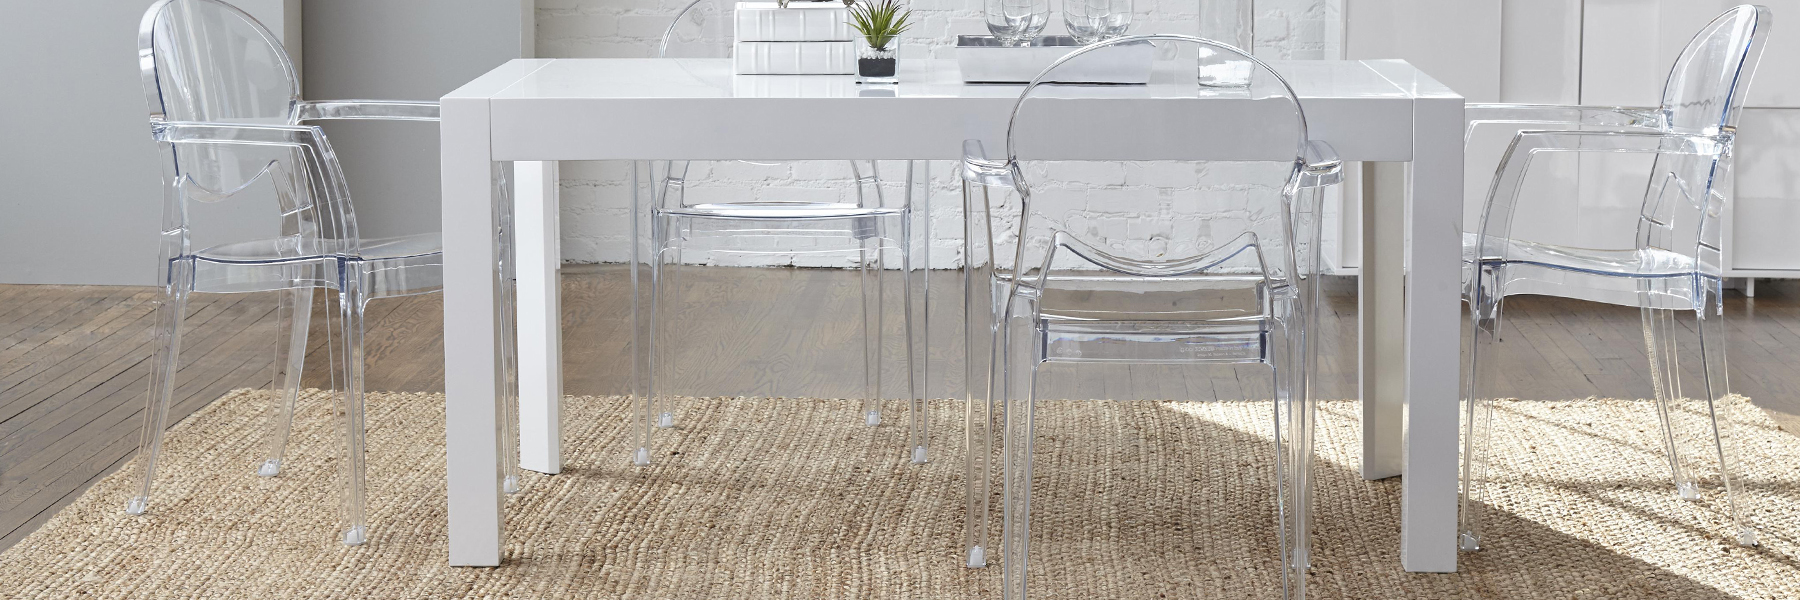 Upscale Contemporary Dining Room Furniture Showroom in Austin, TX